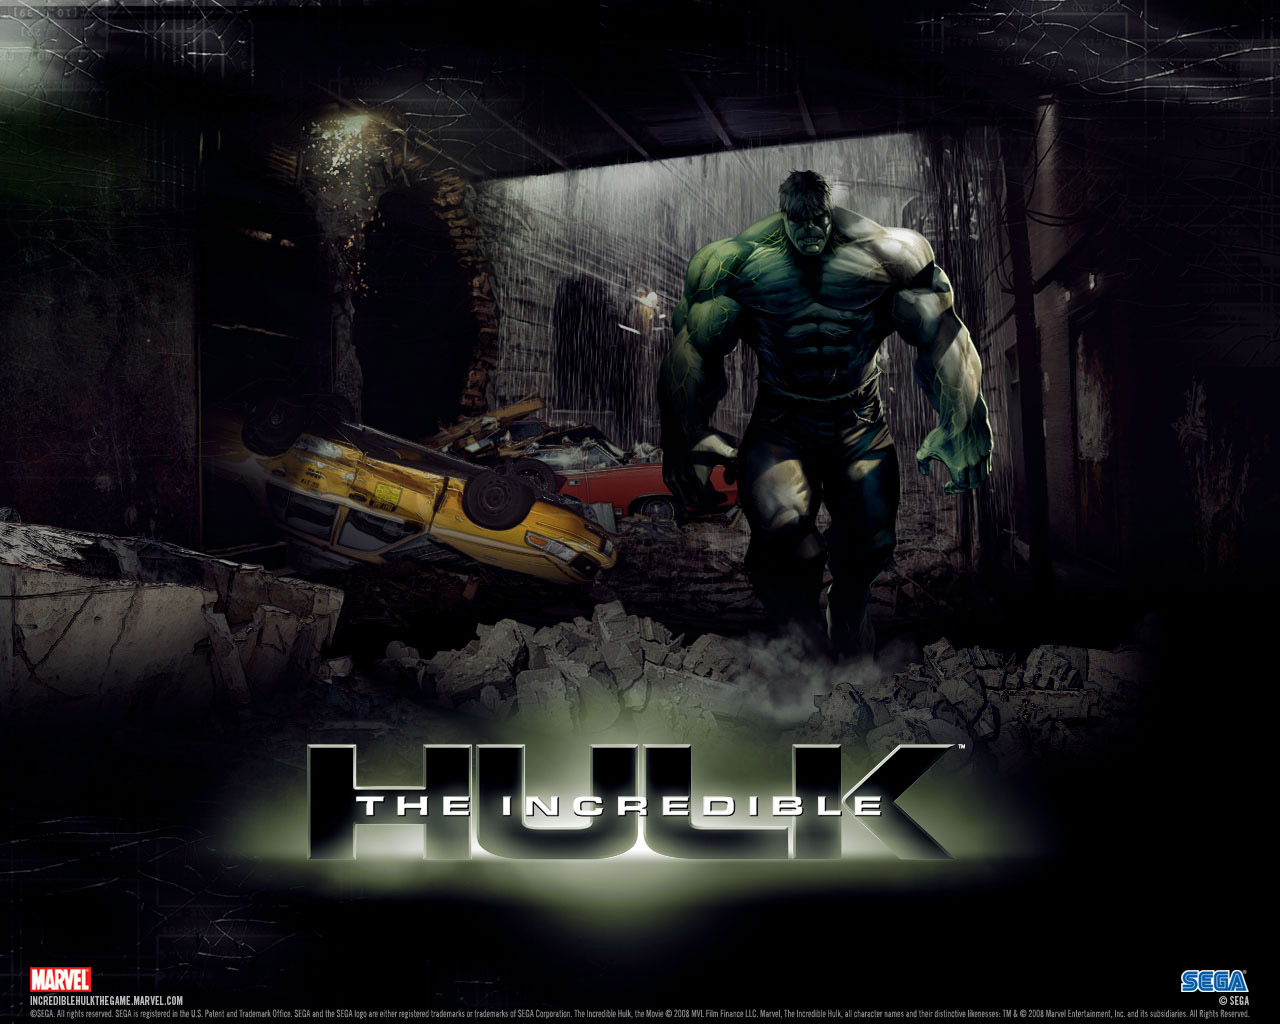 http://1.bp.blogspot.com/-yw2kkdRcKFo/TpdZGWMiHCI/AAAAAAAAARE/NJnSd6uogV8/s1600/incredible-hulk-video-game-wallpaper-l.jpg